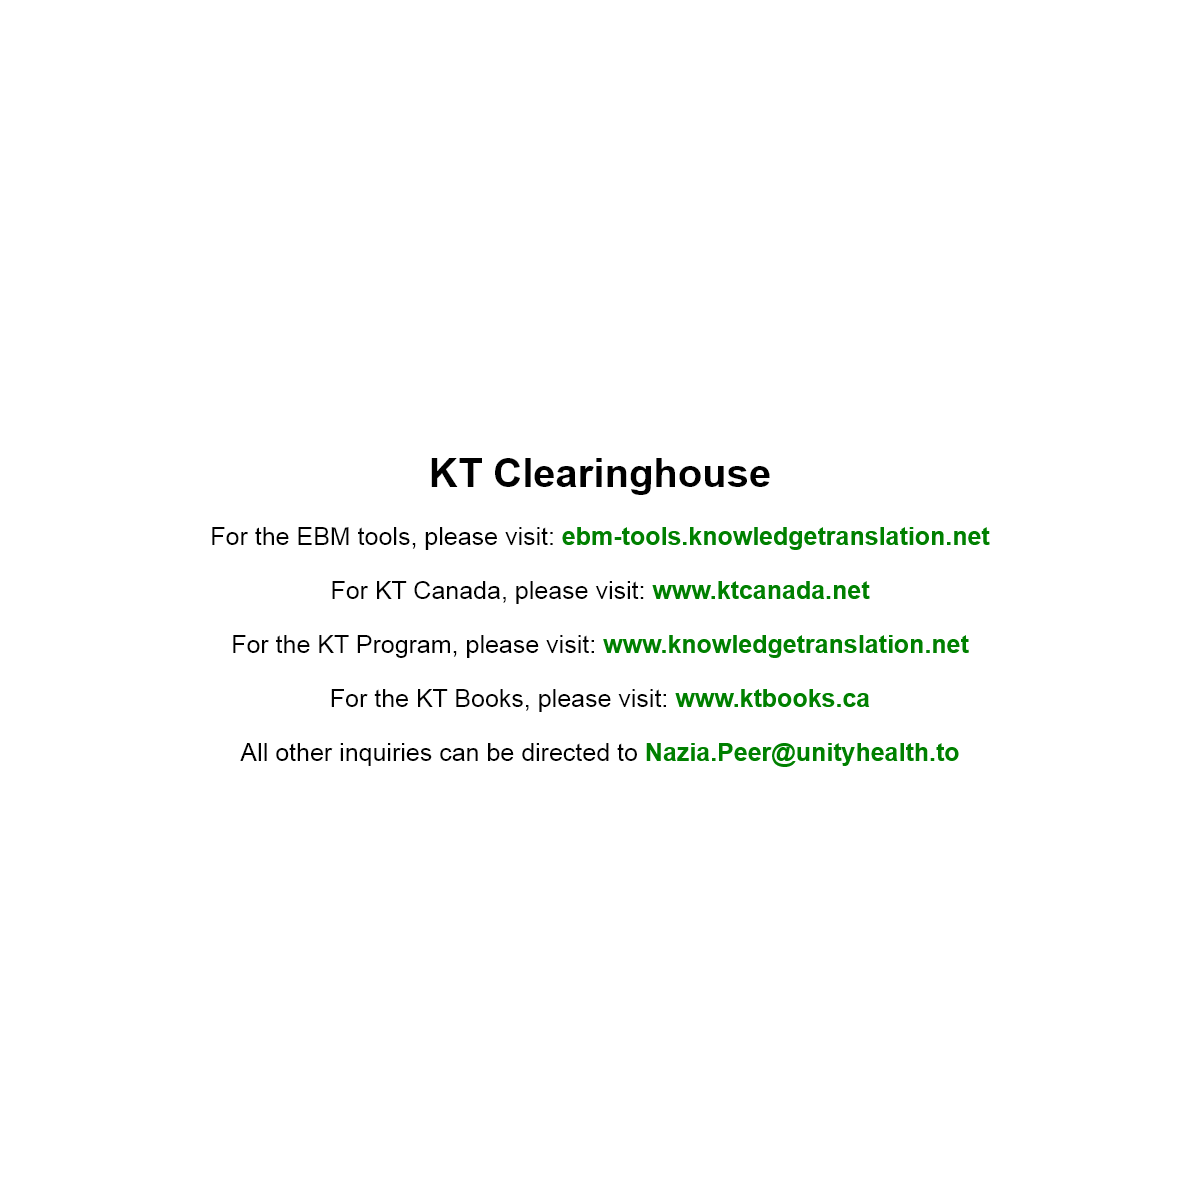 KT Clearinghouse